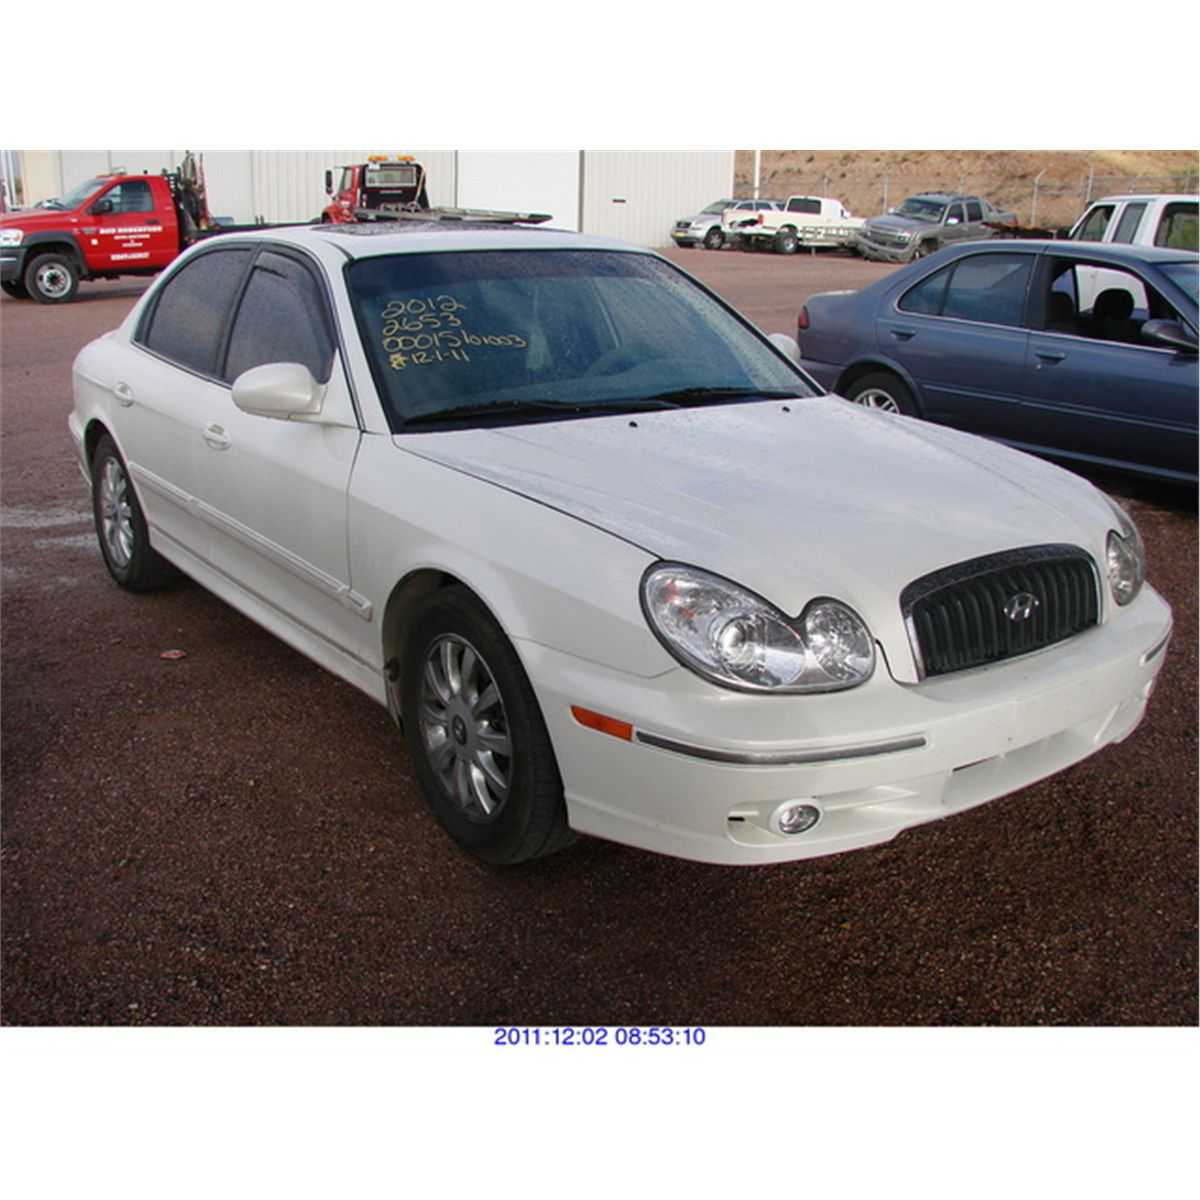 Hyundai Of Yuma >> 2004 - HYUNDAI SONATA - Rod Robertson Enterprises Inc.